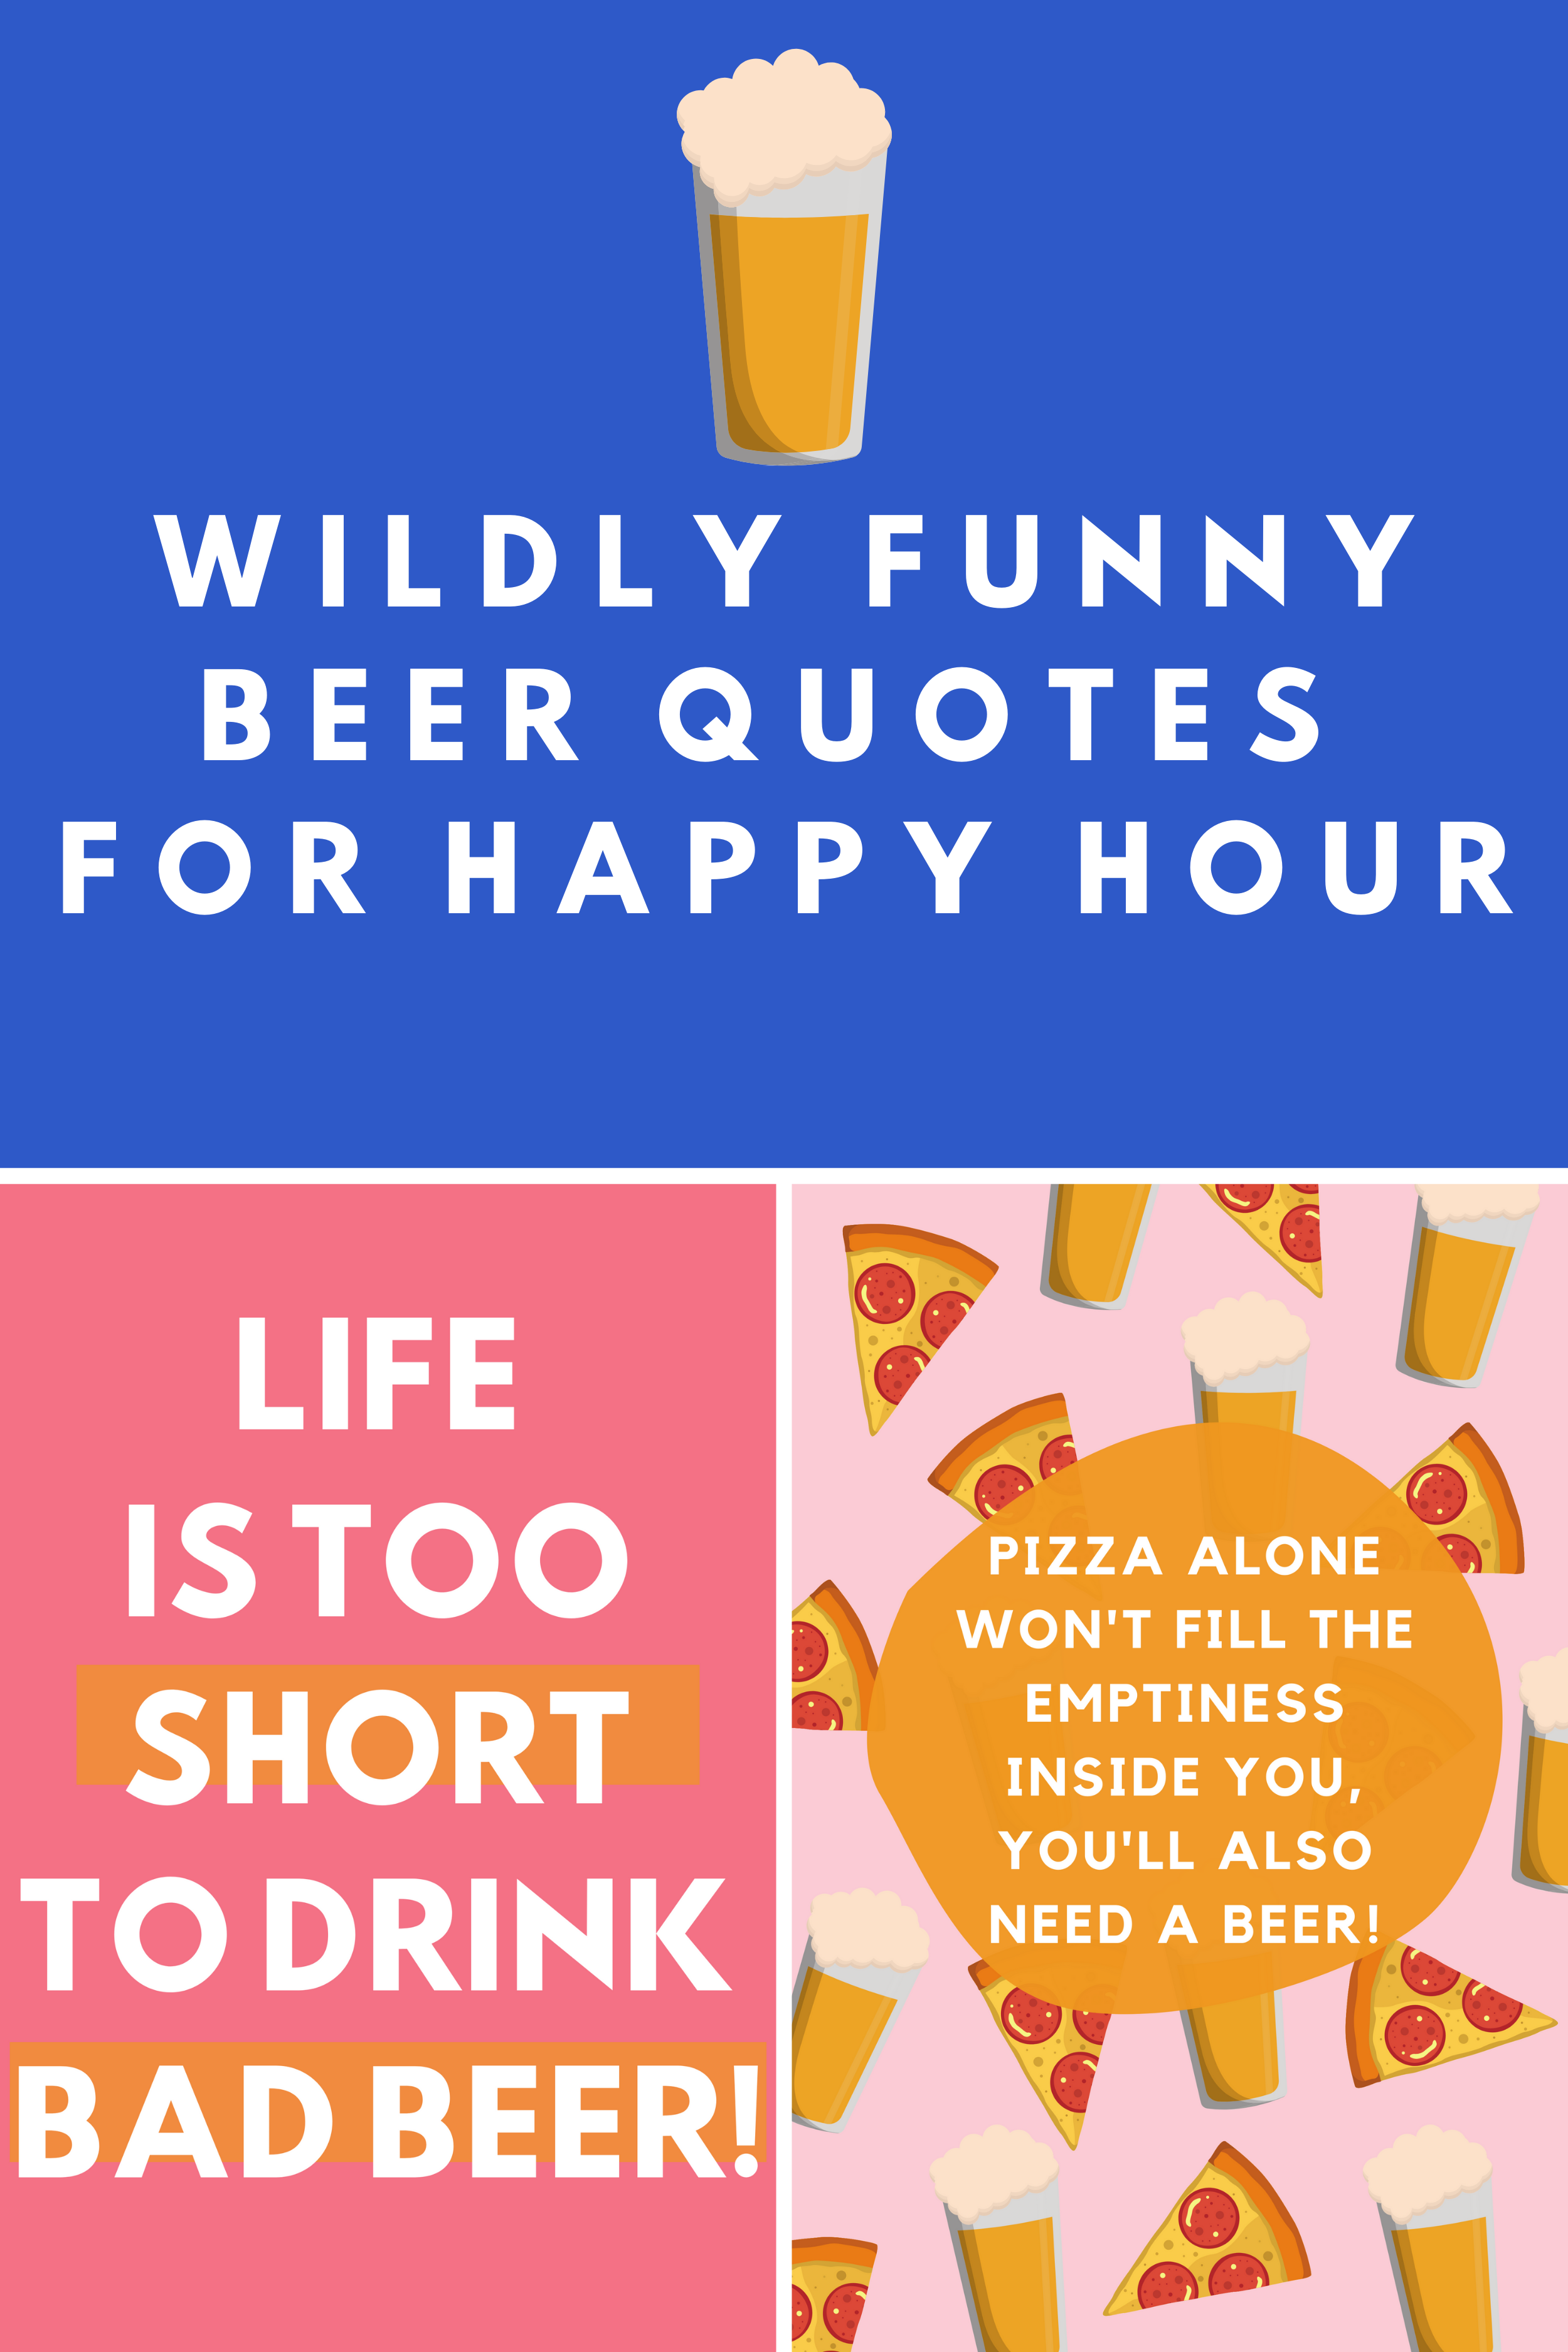 Wildly Funny Beer Quotes With Images For Happy Hour Darling Quote